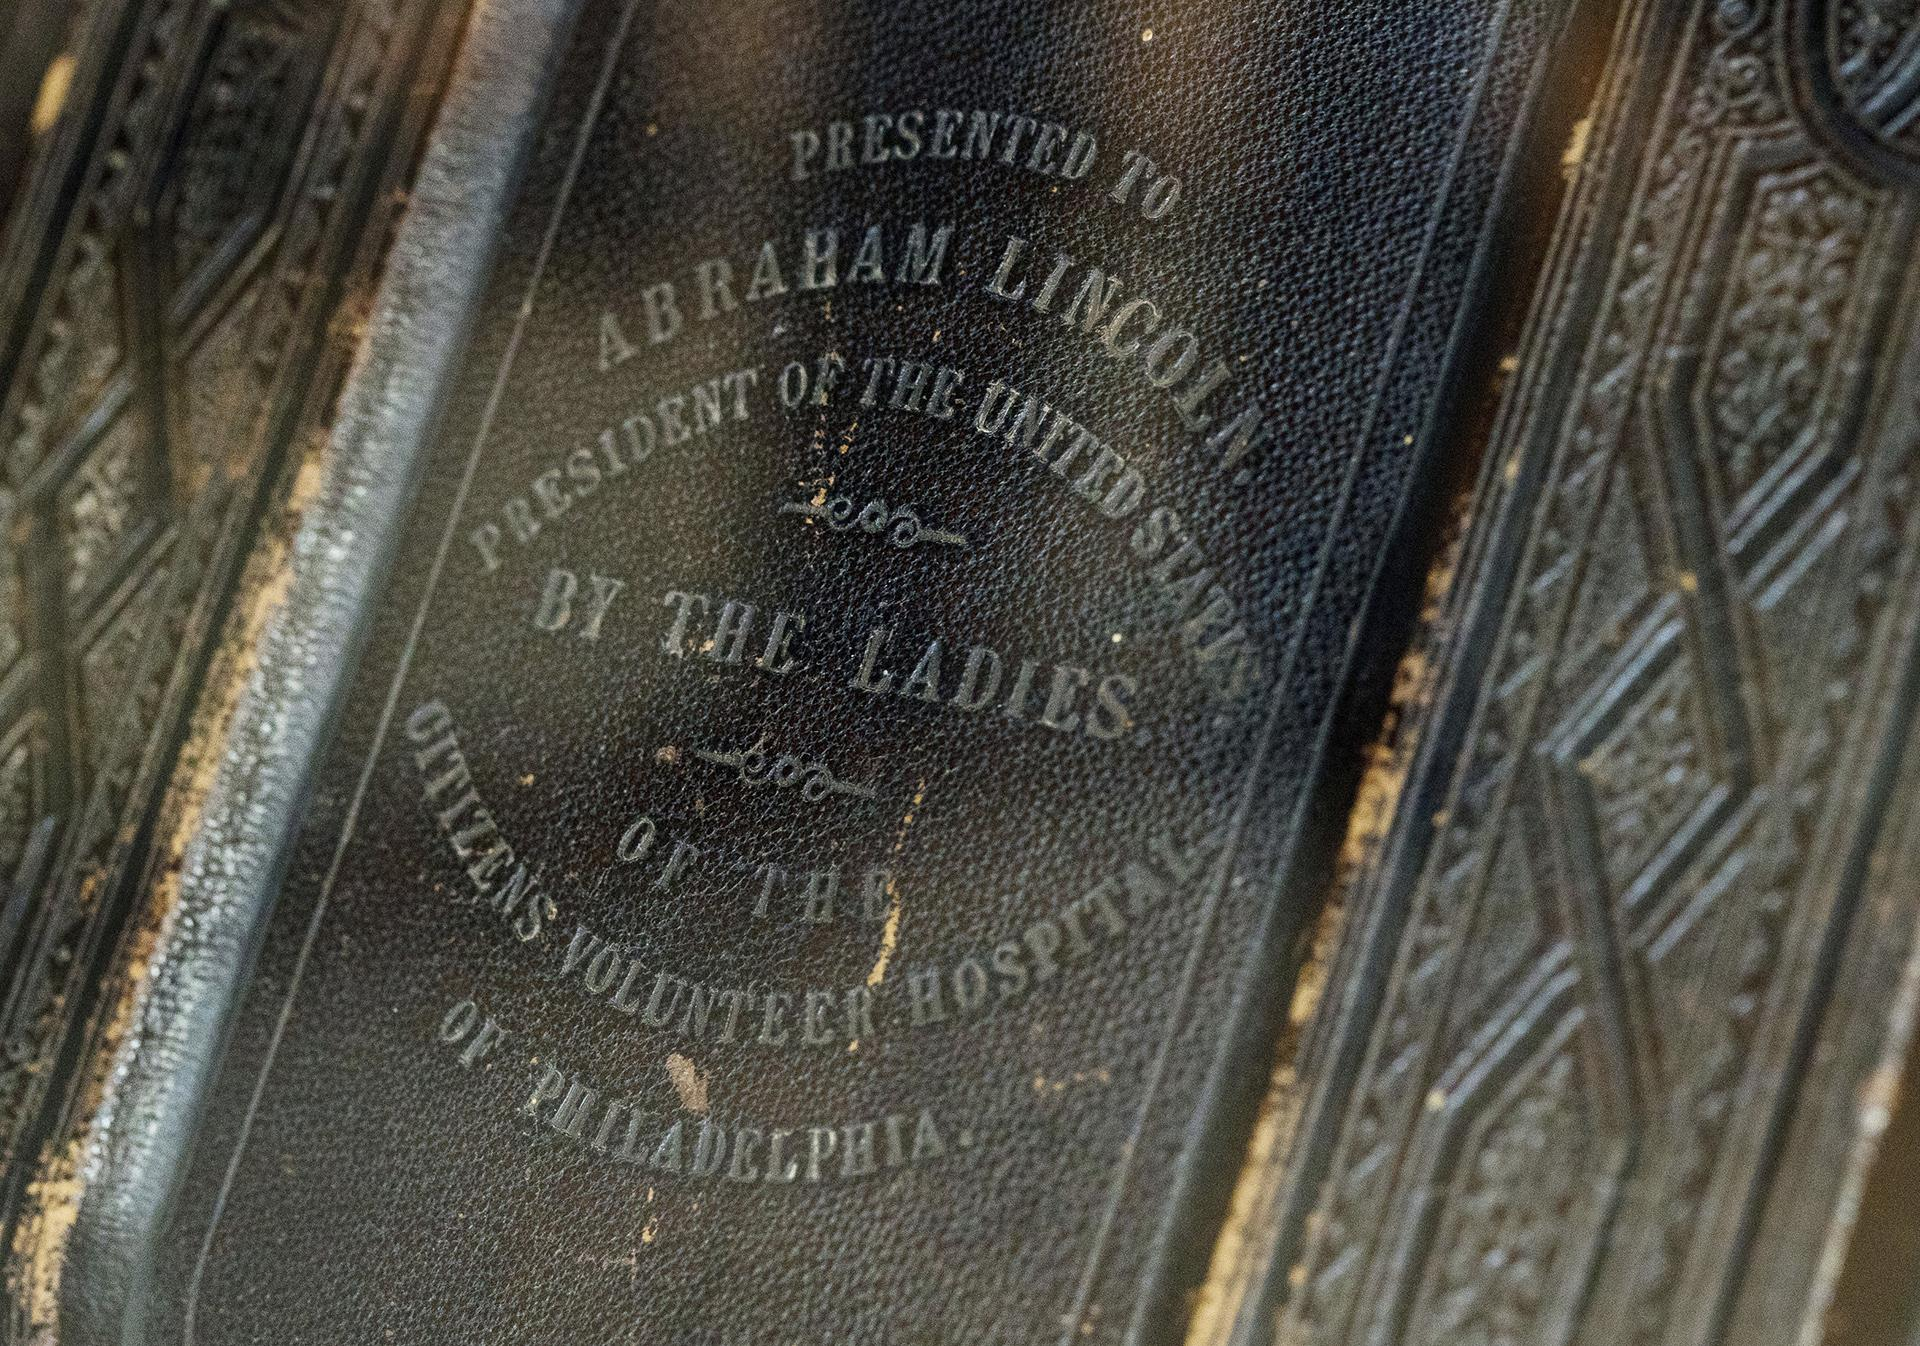 A King James version of the Bible, likely given to Abraham Lincoln in June 1864, that was later passed on by widow Mary Lincoln to her beloved Springfield neighbor Noyes W. Miner, a Baptist minister, is displayed at the Abraham Lincoln Presidential Library and Museum, where executive director Alan Lowe unveiled it, Thursday, June 20, 2019, in Springfield, Illinois. (Ted Schurter / The State Journal-Register via AP)